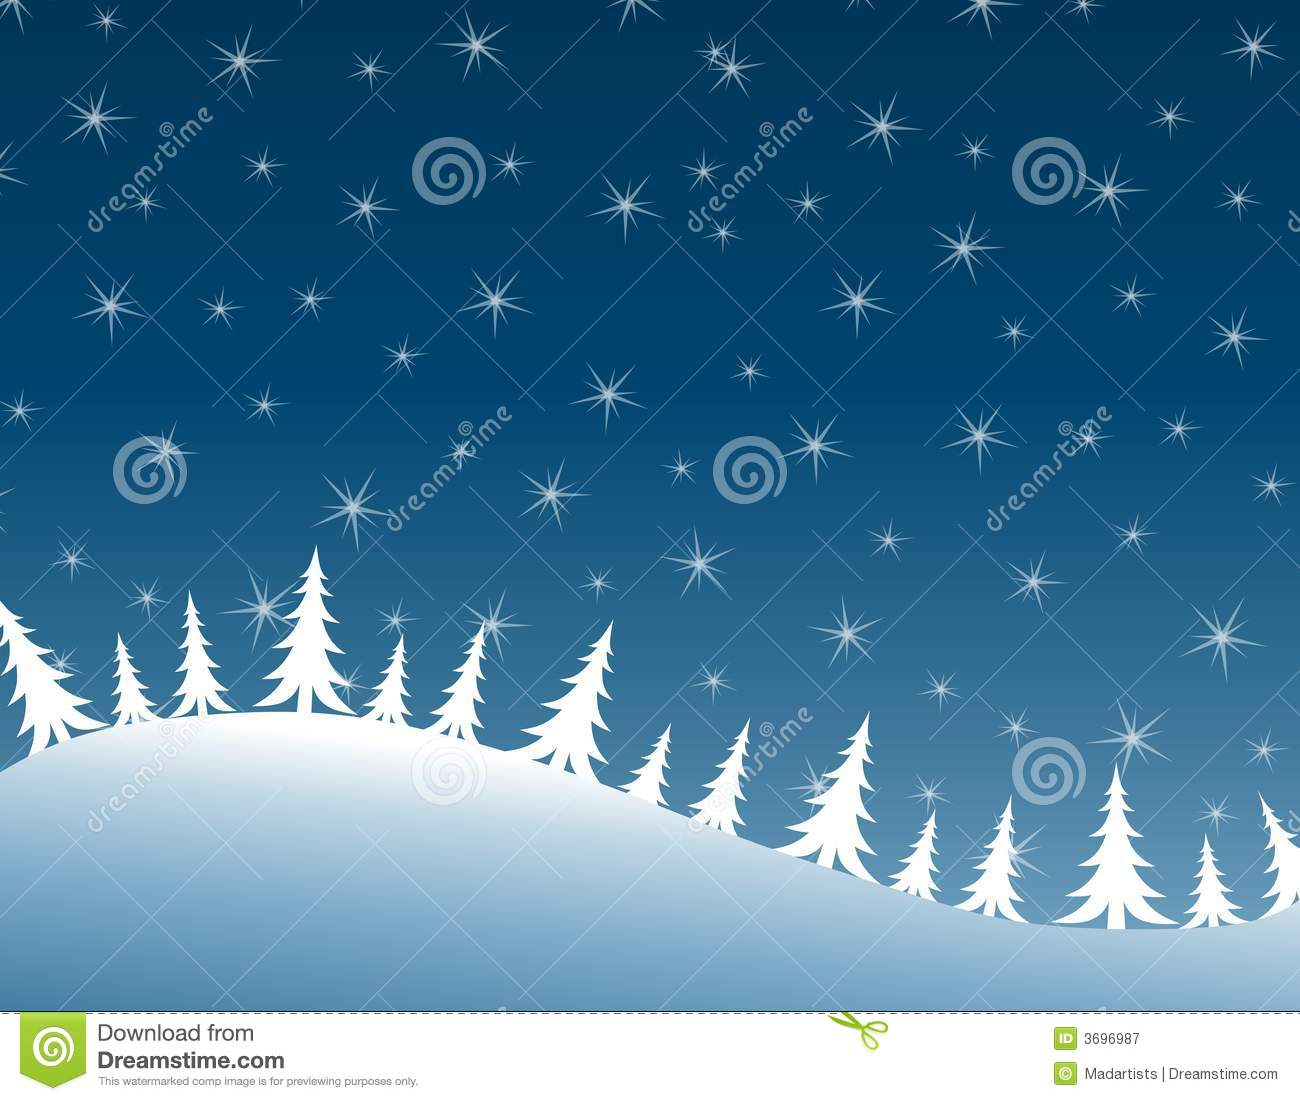 clip art illustration featuring a row of white Christmas trees ...